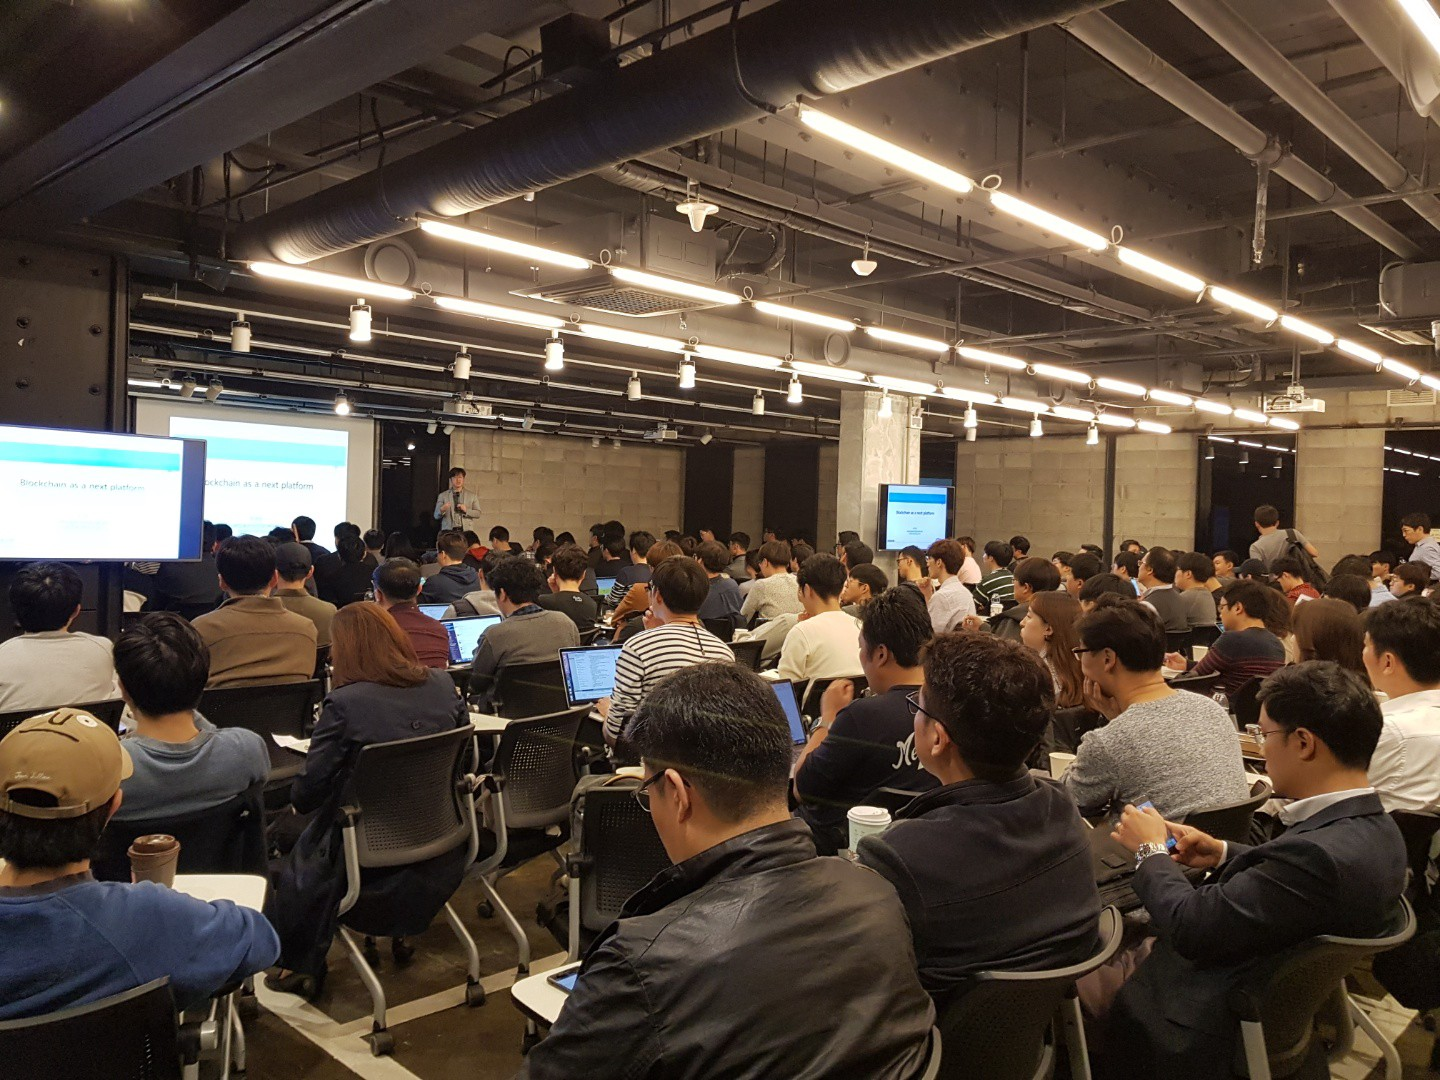 #9 BlockchainDay - Developer Conference - co-hosted by Hashed, FuturePlay, KodeBox, EthereumResearchGroupw/ 200+ developers